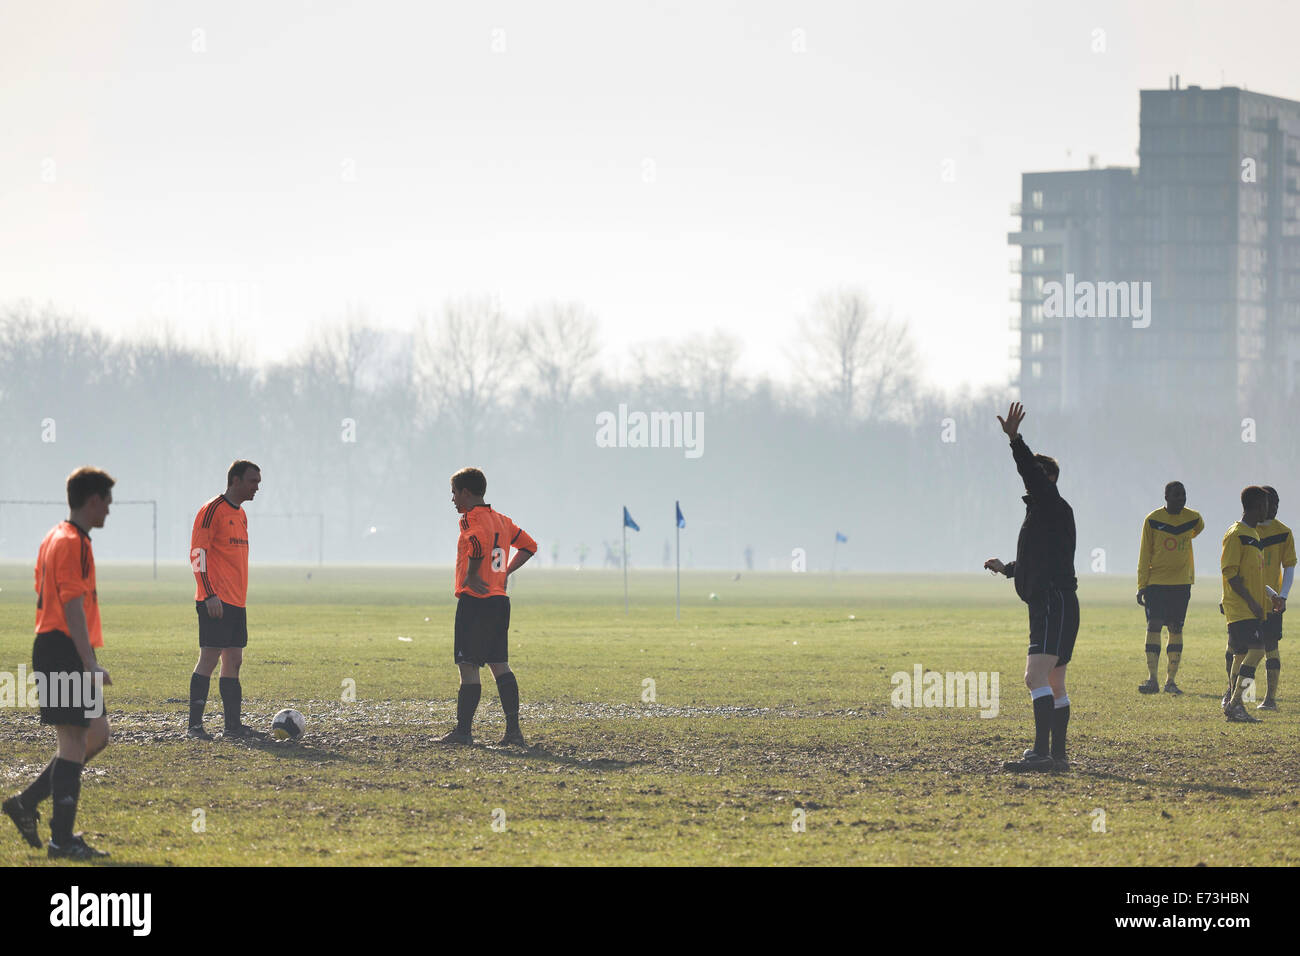 Hackney Marshes Sunday league, players get ready for start of match - Stock Image